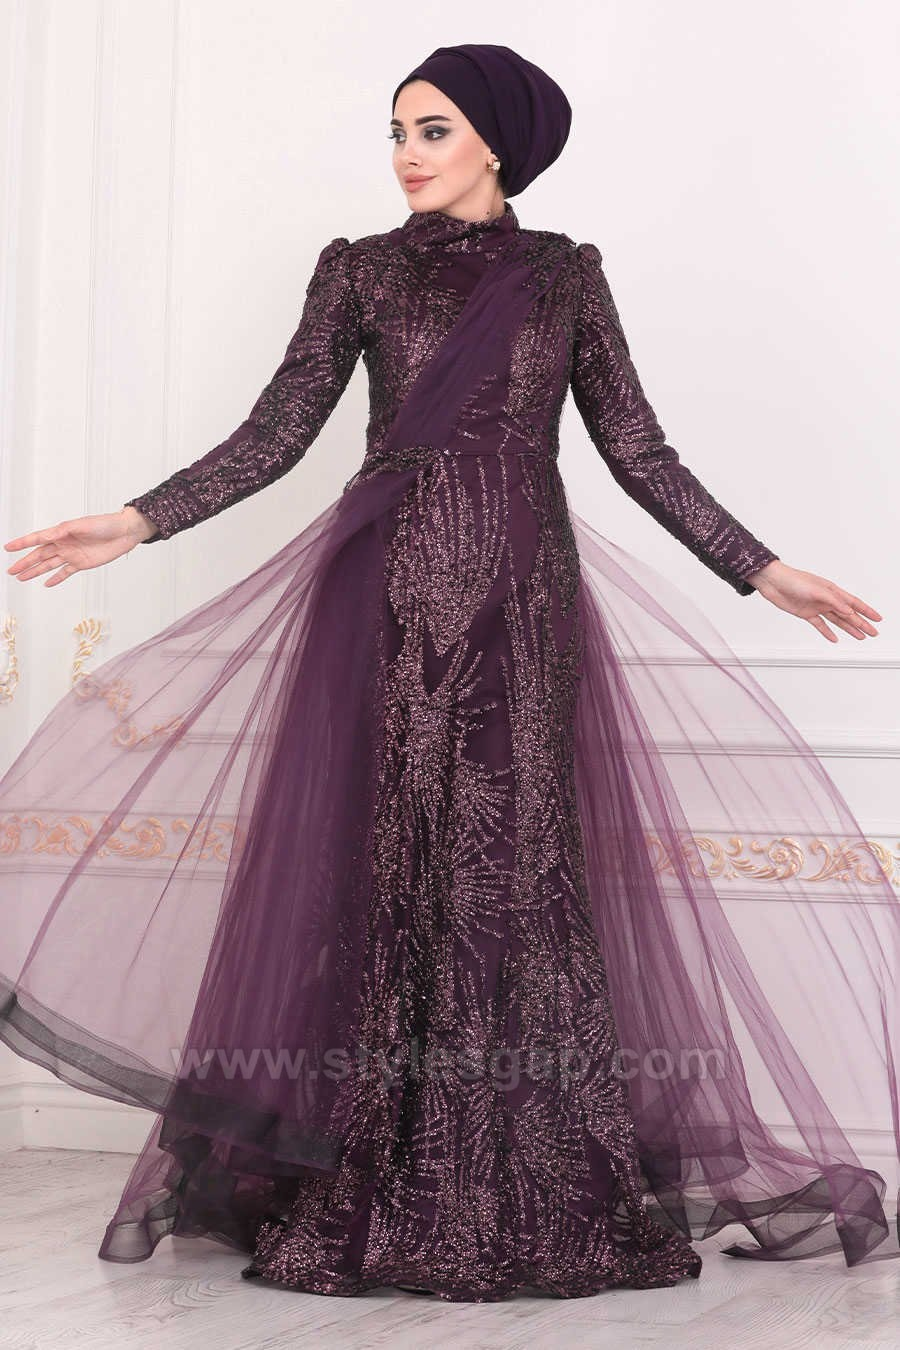 Fancy Party Wear Formal Hijabs Abaya Evening Dresses